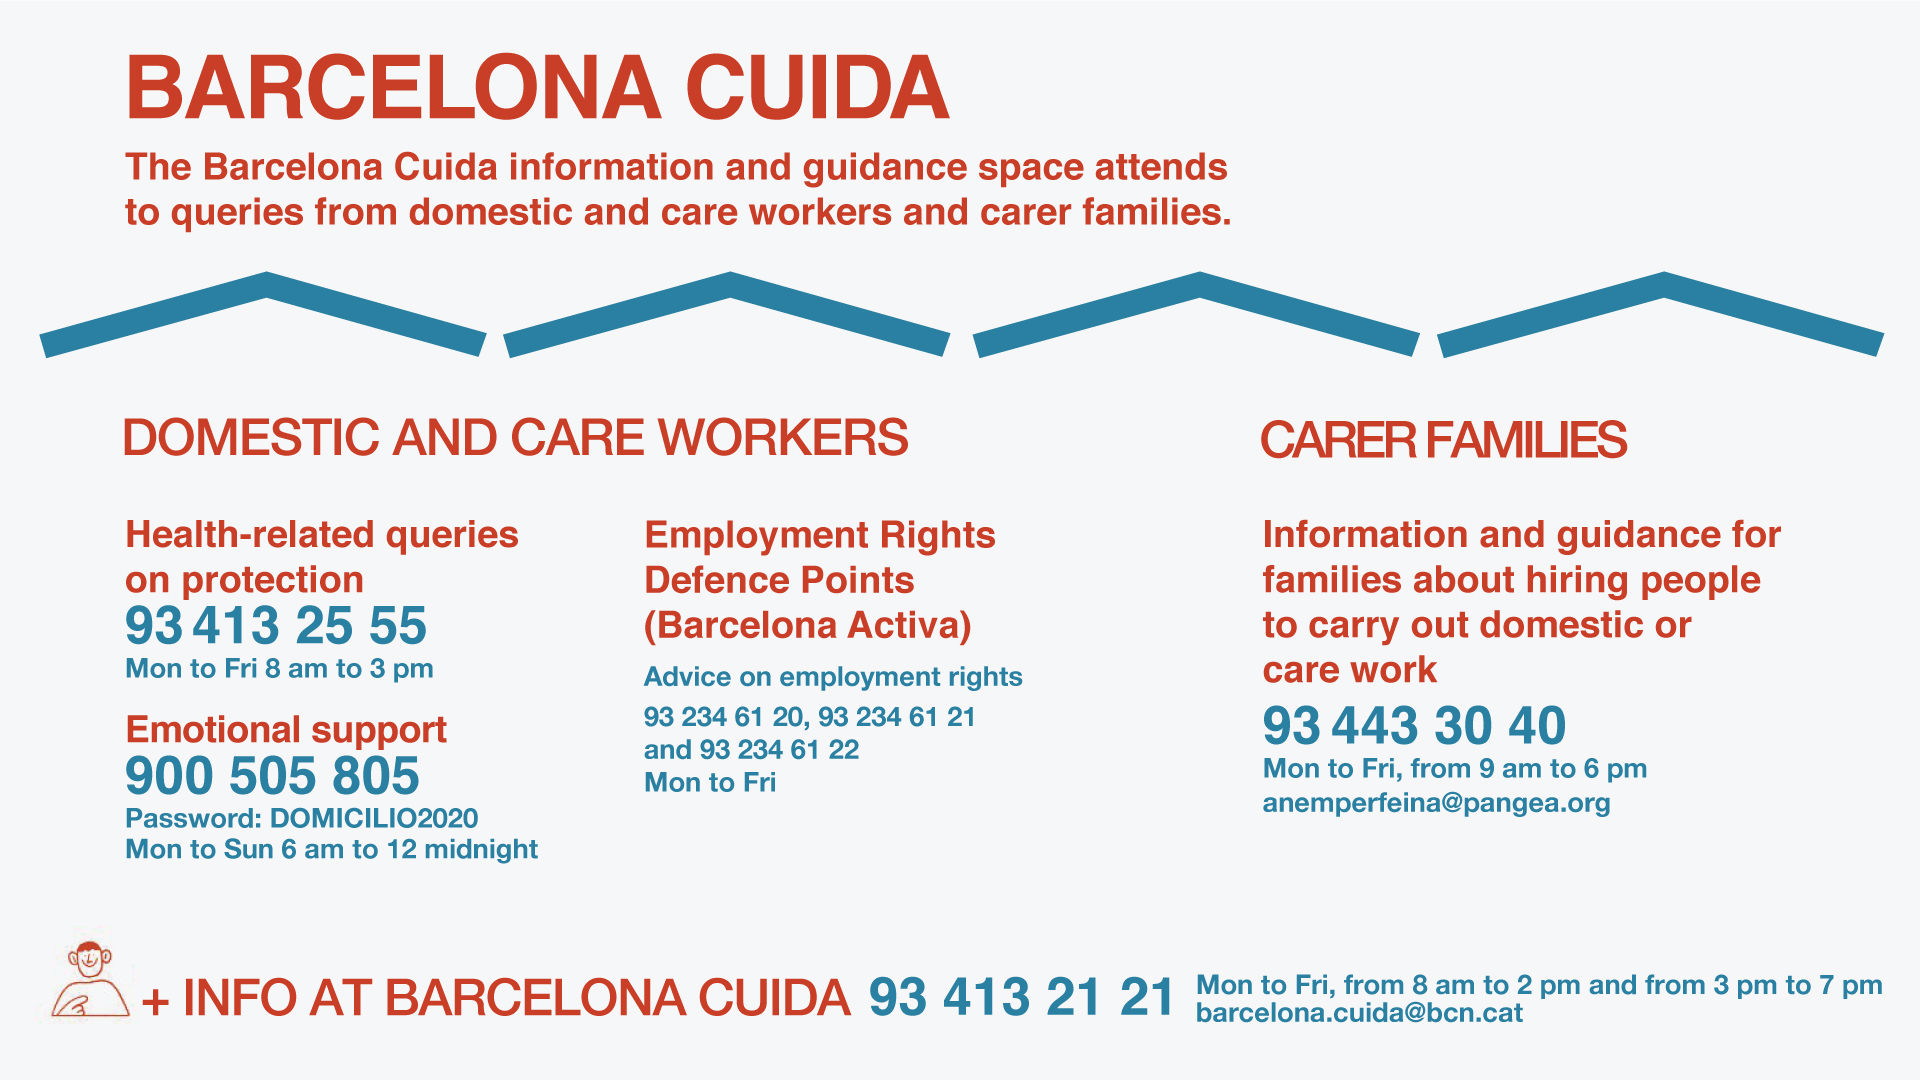 Infography with phone numbers of the Barcelona Cuida space. Please click on the image to read the information.